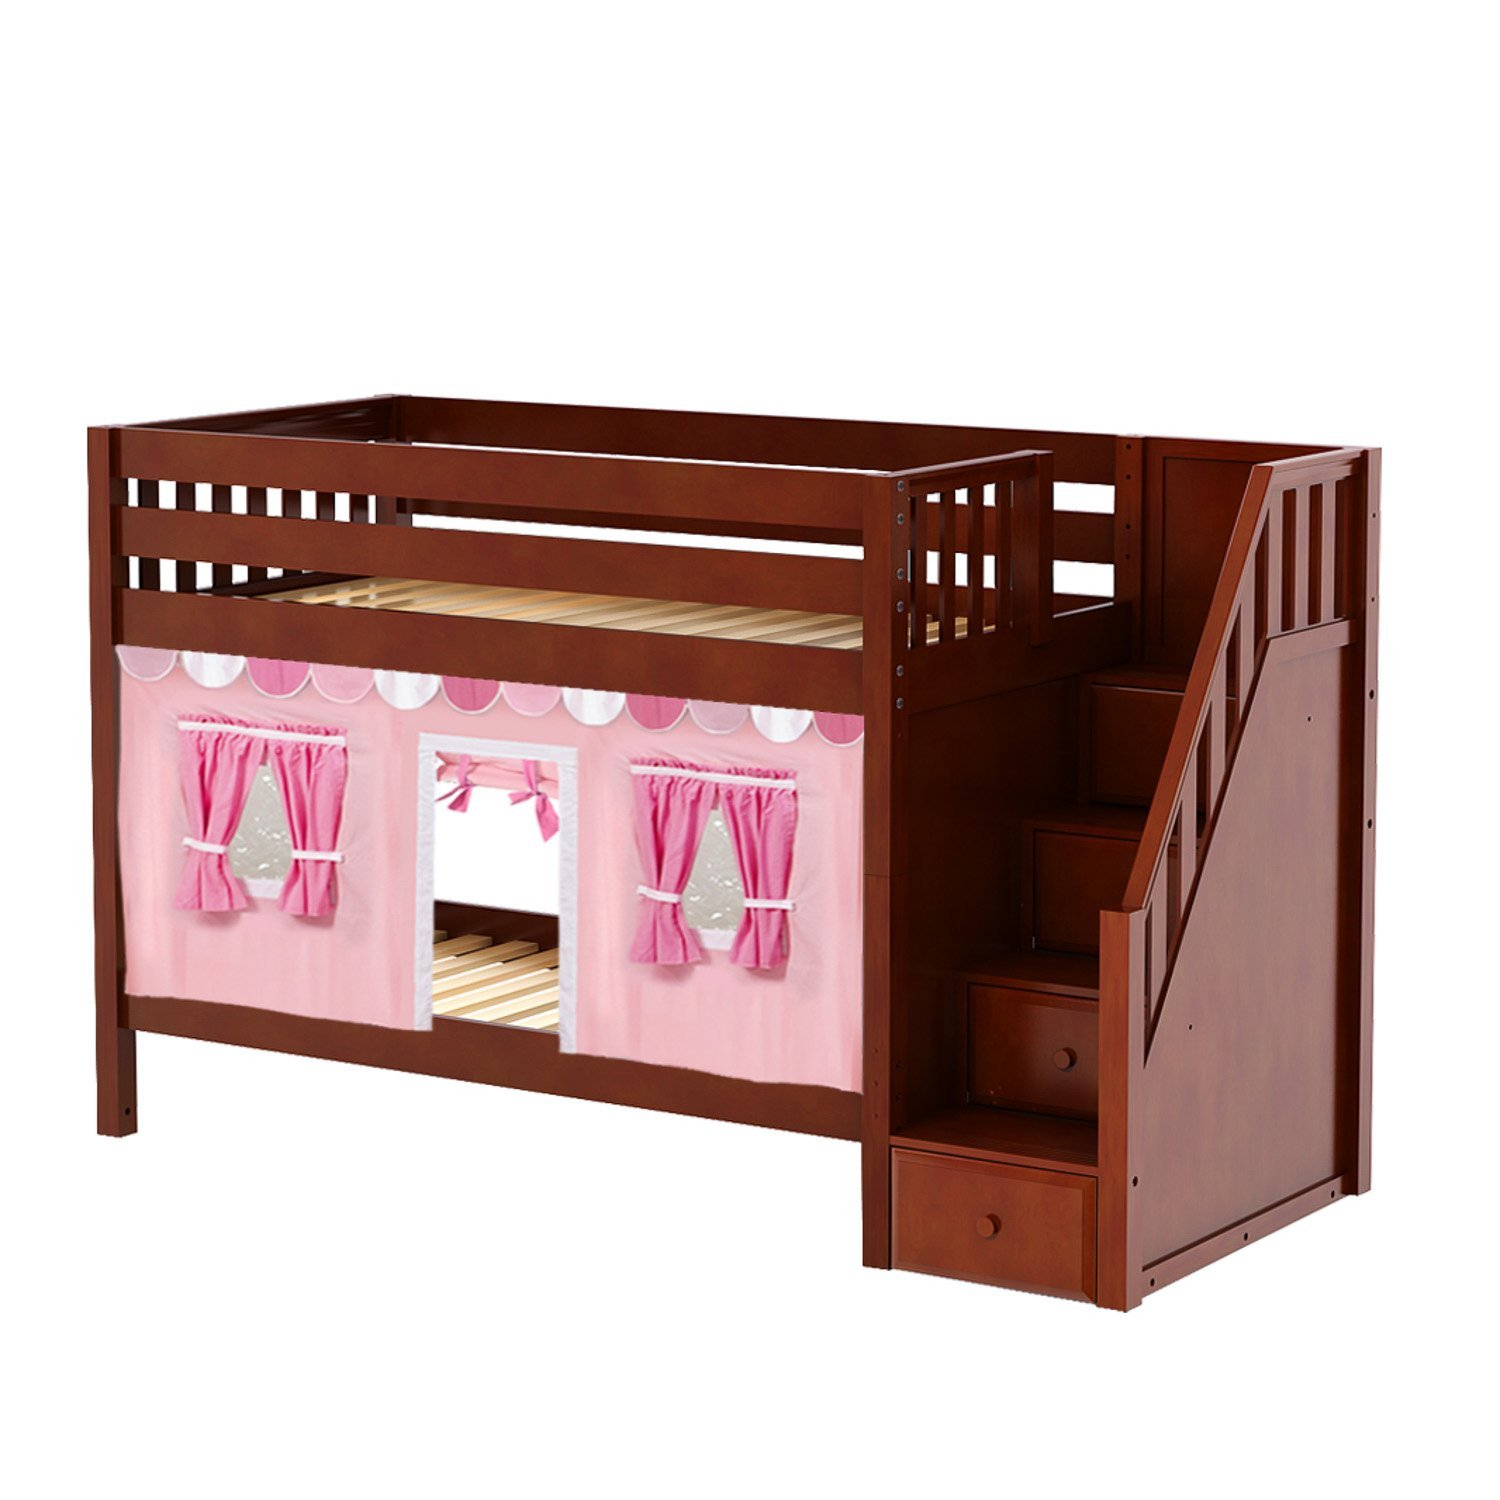 Maxtrix Solid Hardwood Twin/Twin Low Bunk Bed with Storage Staircase Entry and Low Bunk Curtains, Chestnut Finish, Pink, Soft Pink, and White Fabric